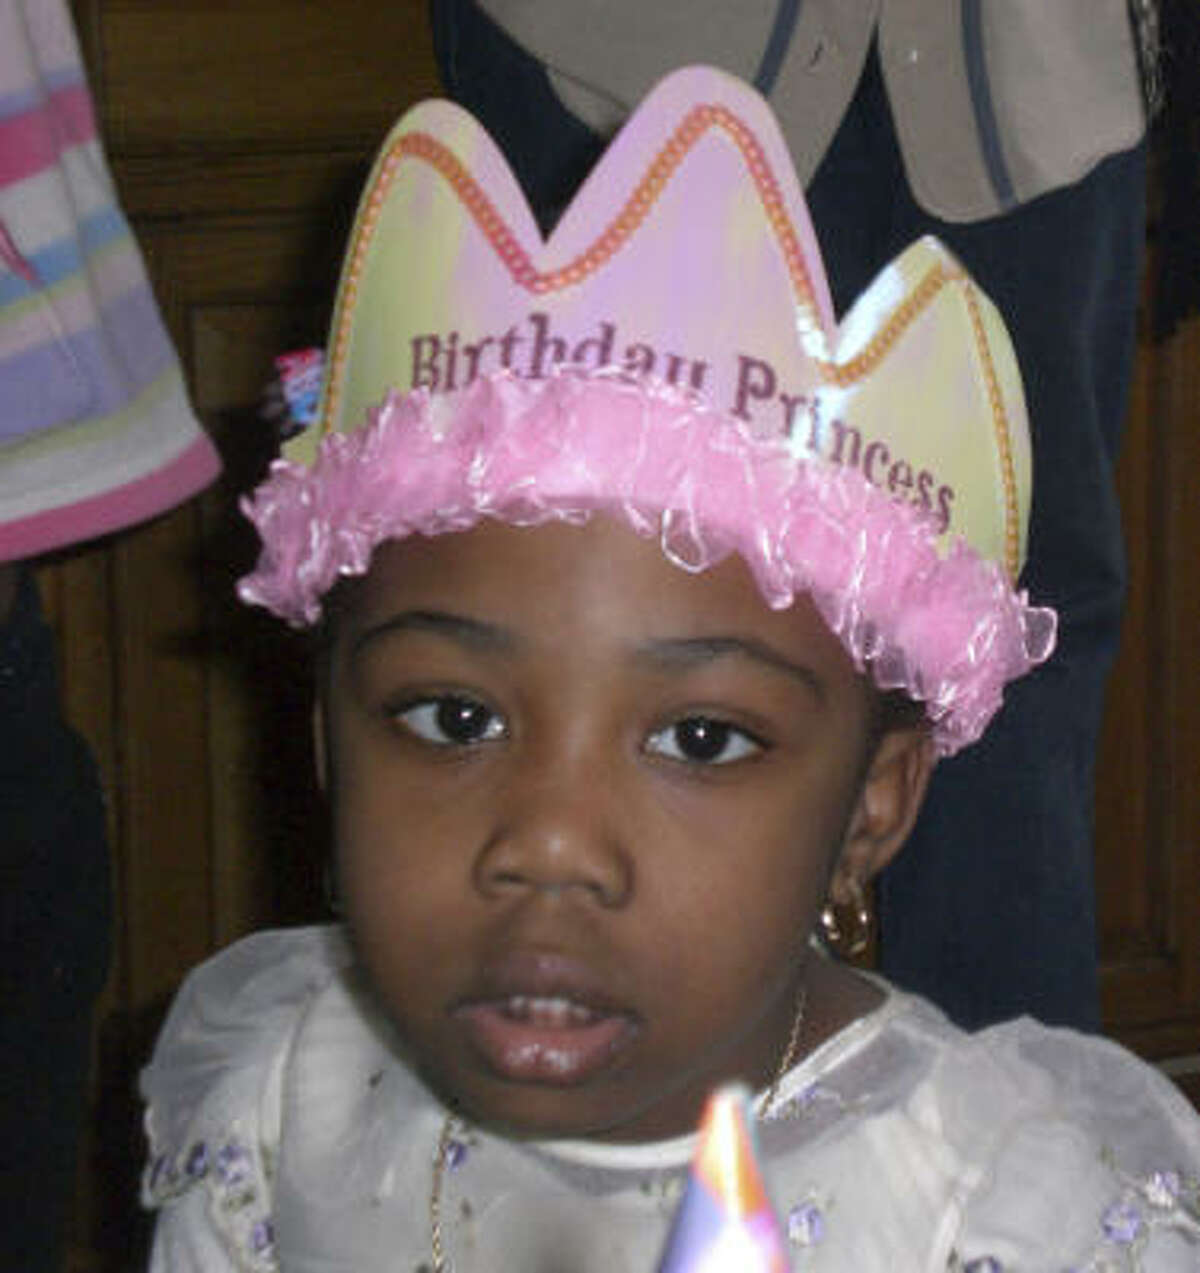 Bianca Revelus, 5, was decapitated by her brother in front of the police.